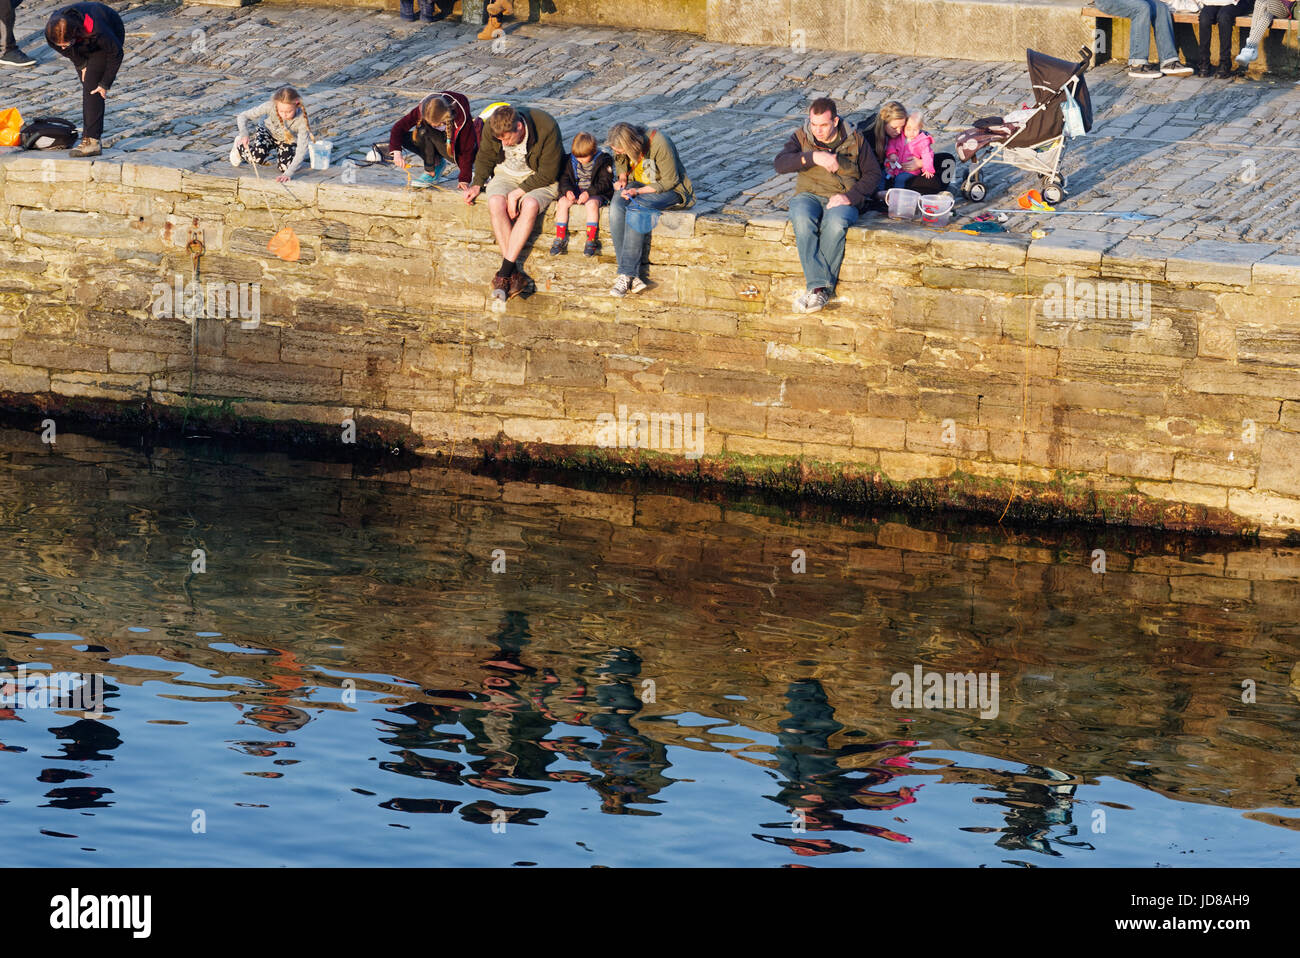 People catching crabs off the pier at Swanage in Dorset - Stock Image